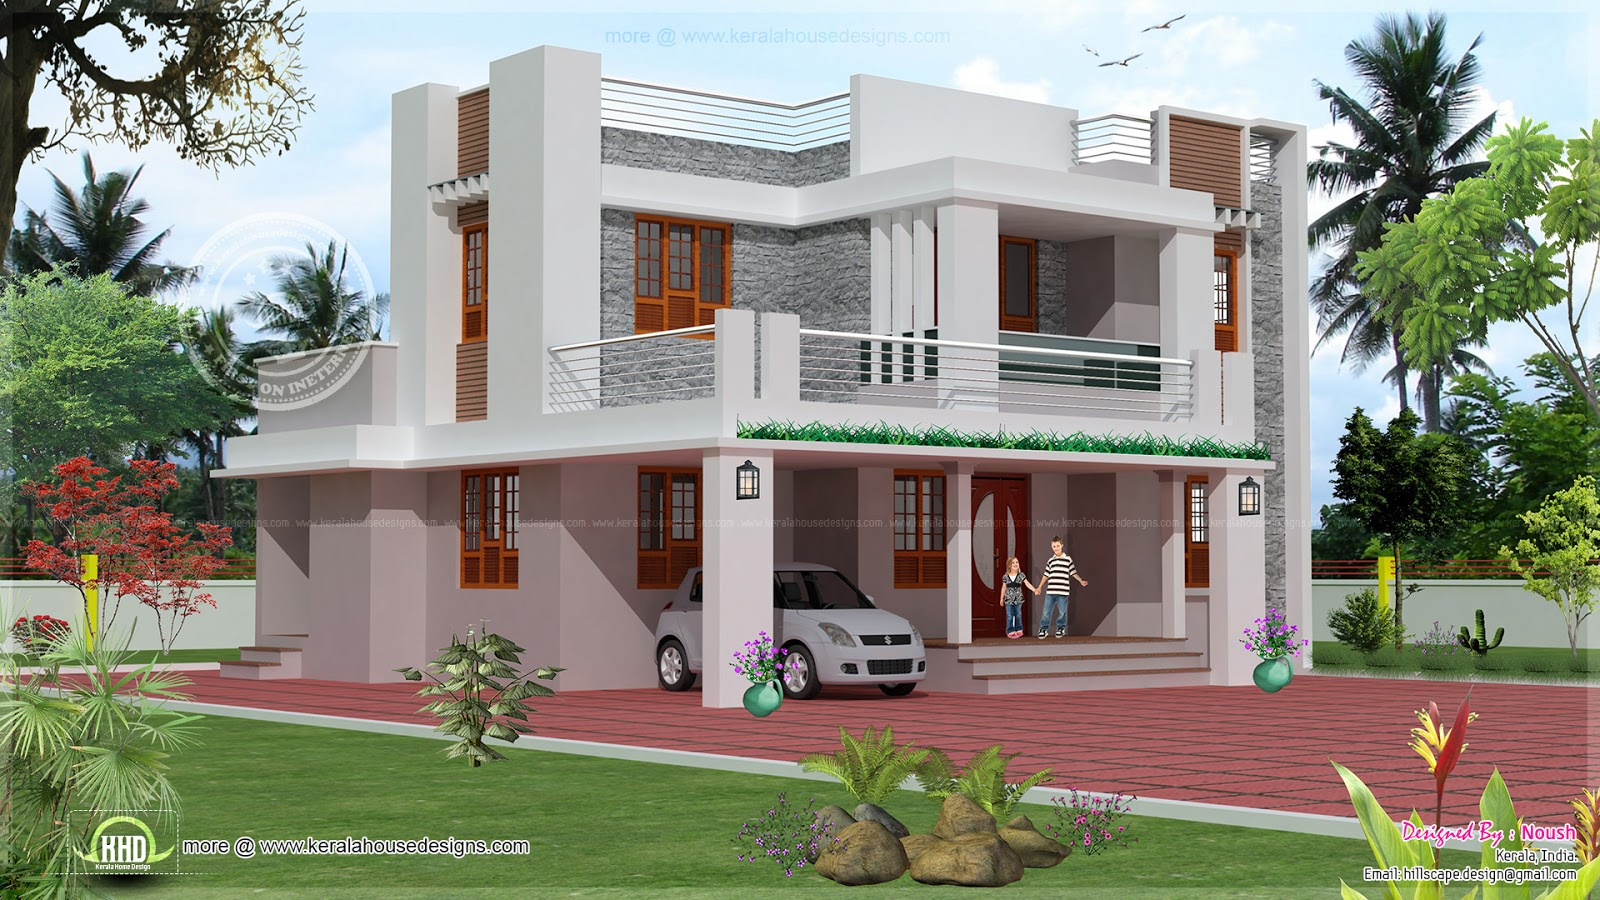 4 bedroom 2 story house exterior design house design plans 2 storey house plans